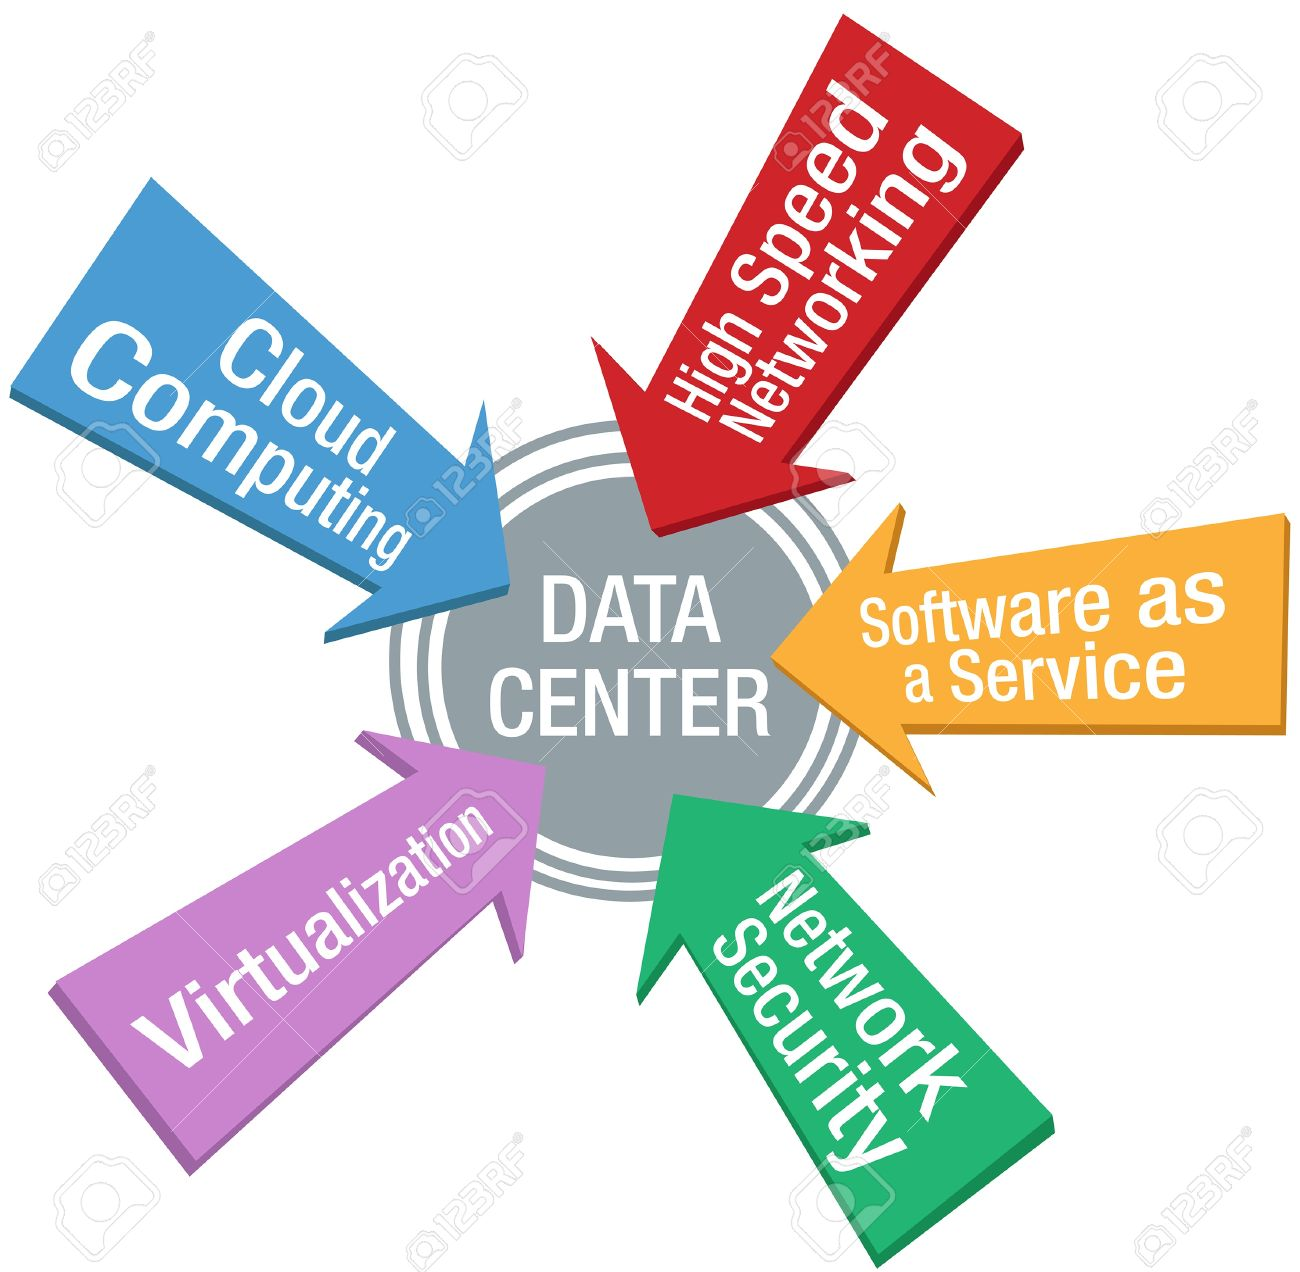 Arrows point at Network Security Software Cloud Computing Virtualization Data Center target Stock Vector - 15548914